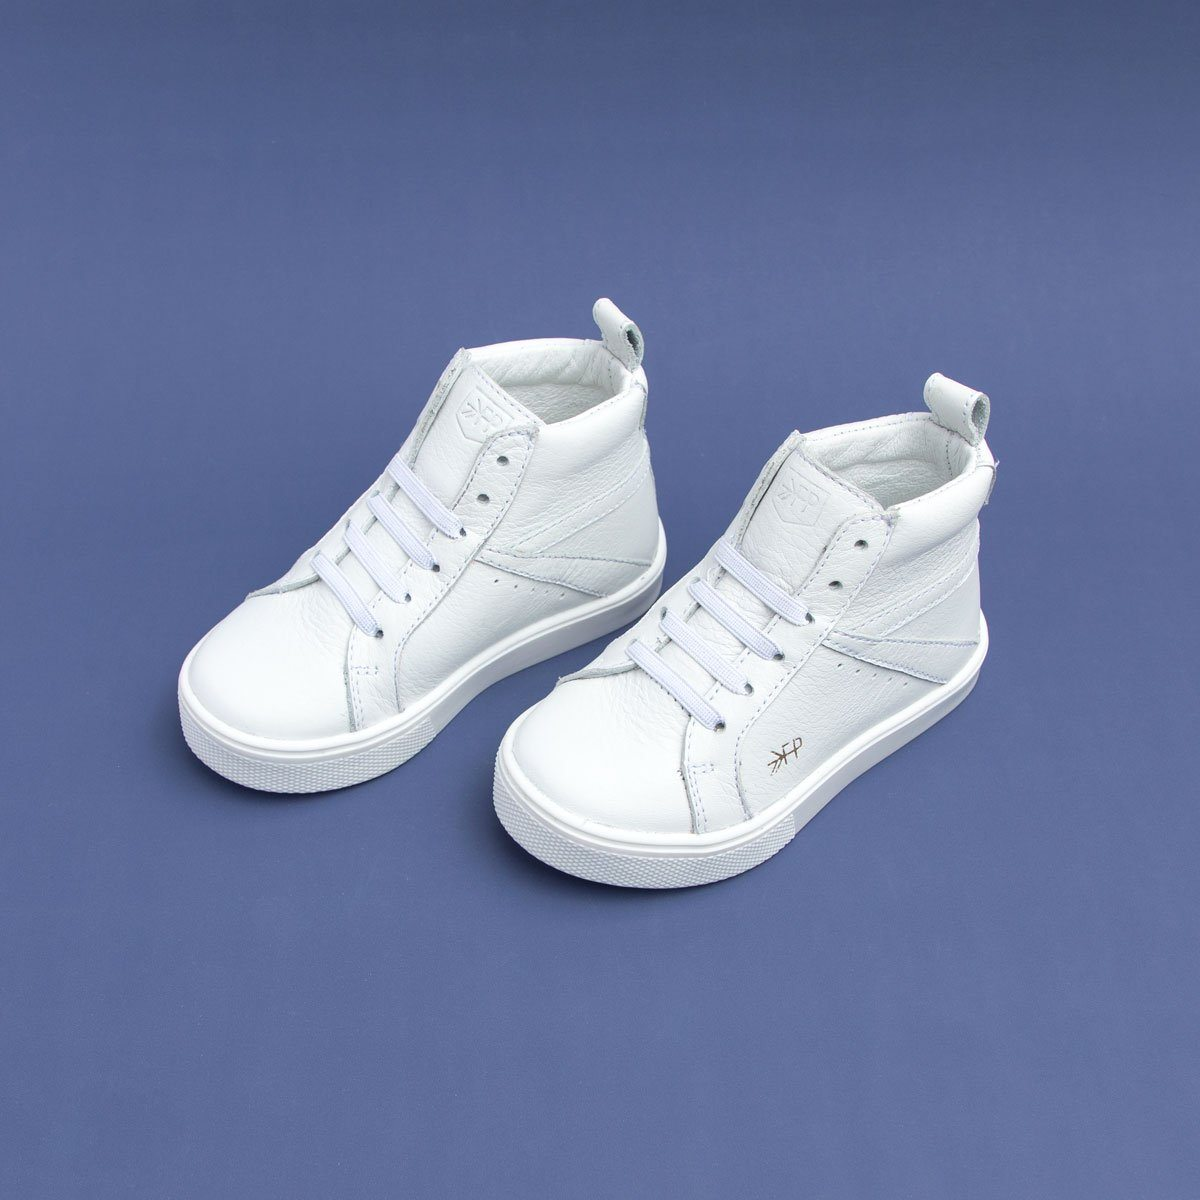 White High Top Sneaker Kids - High Top Sneaker Kids Sneakers